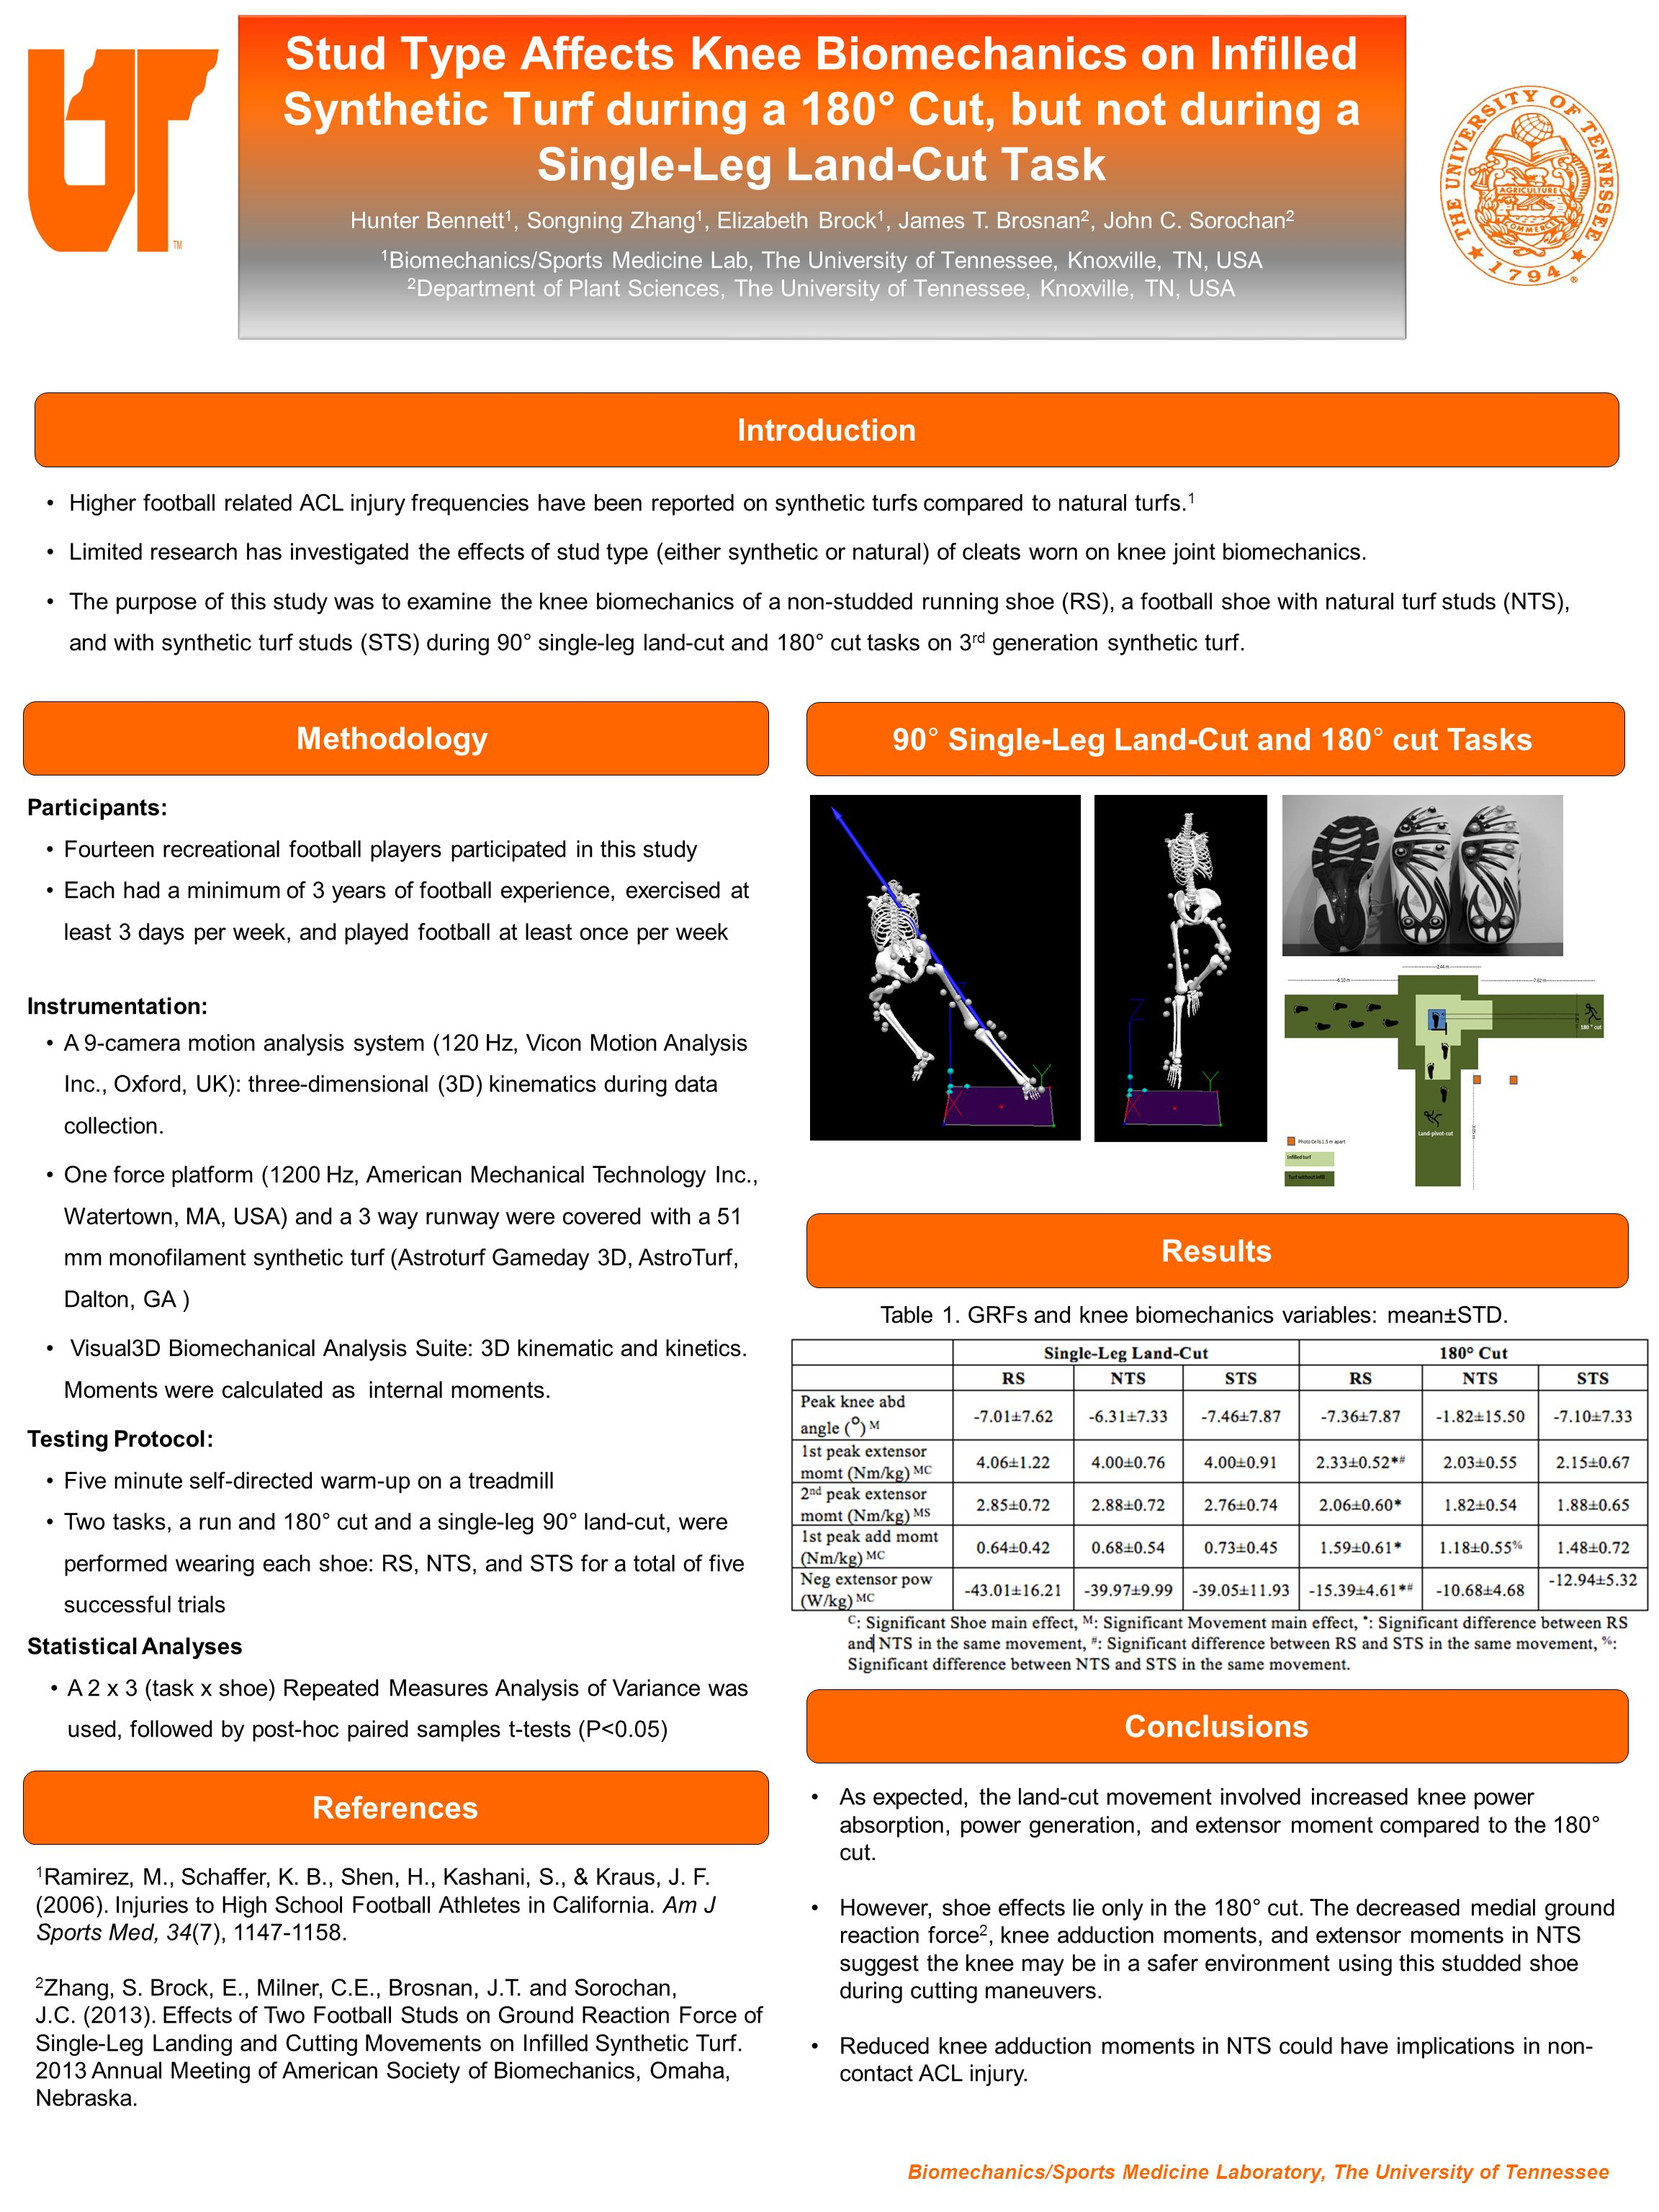 Stud Type Affects Knee Biomechanics on Infilled Synthetic Turf during a 180° Cut, but not during a Single-Leg Land-Cut Task 1 Biomechanics/Sports Medicine Lab, The University of Tennessee, Knoxville, TN, USA 2 Department of Plant Sciences, The University of Tennessee, Knoxville, TN, USA As expected, the land-cut movement involved increased knee power absorption, power generation, and extensor moment compared to the 180° cut.